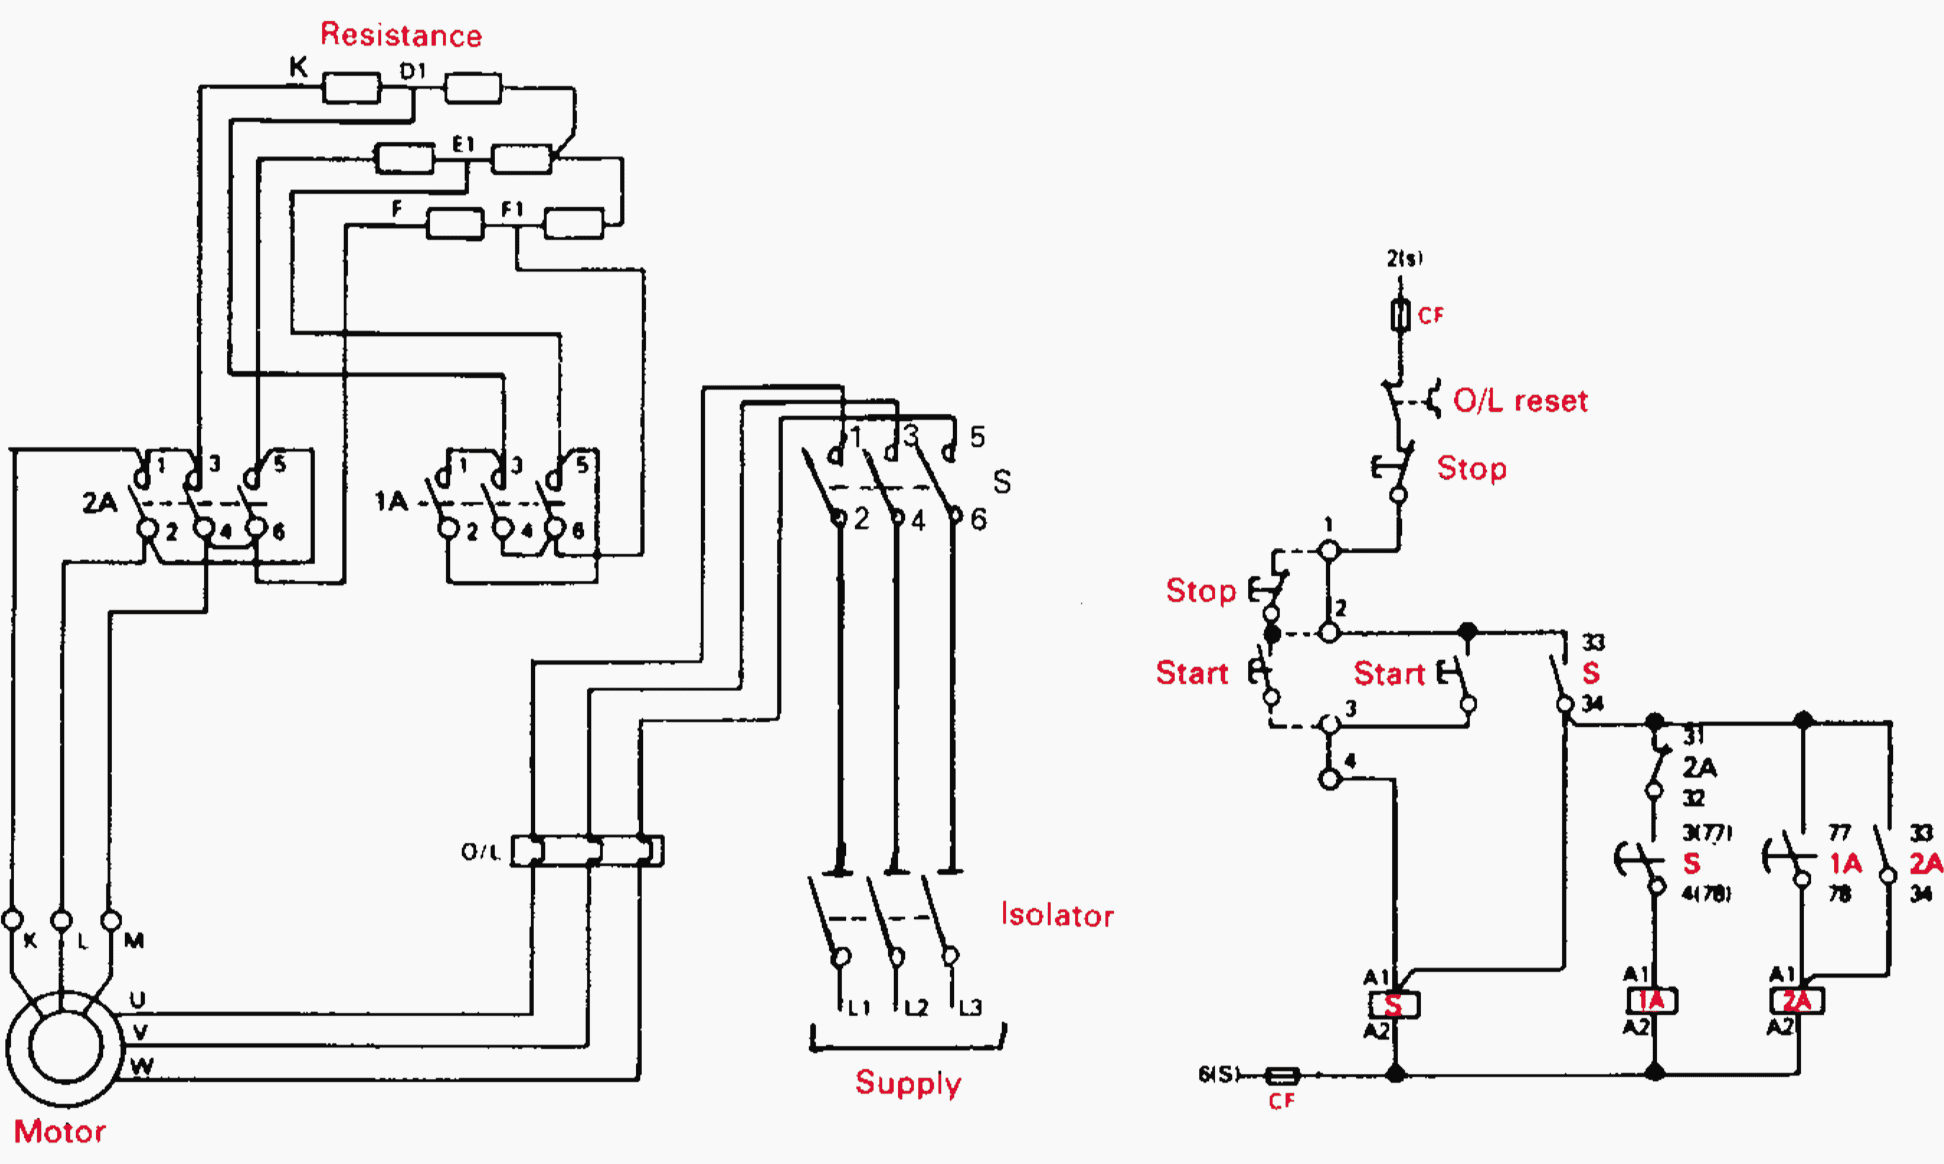 auto starter motor wiring diagram house symbols uk contactor as an important part of the control gear eep